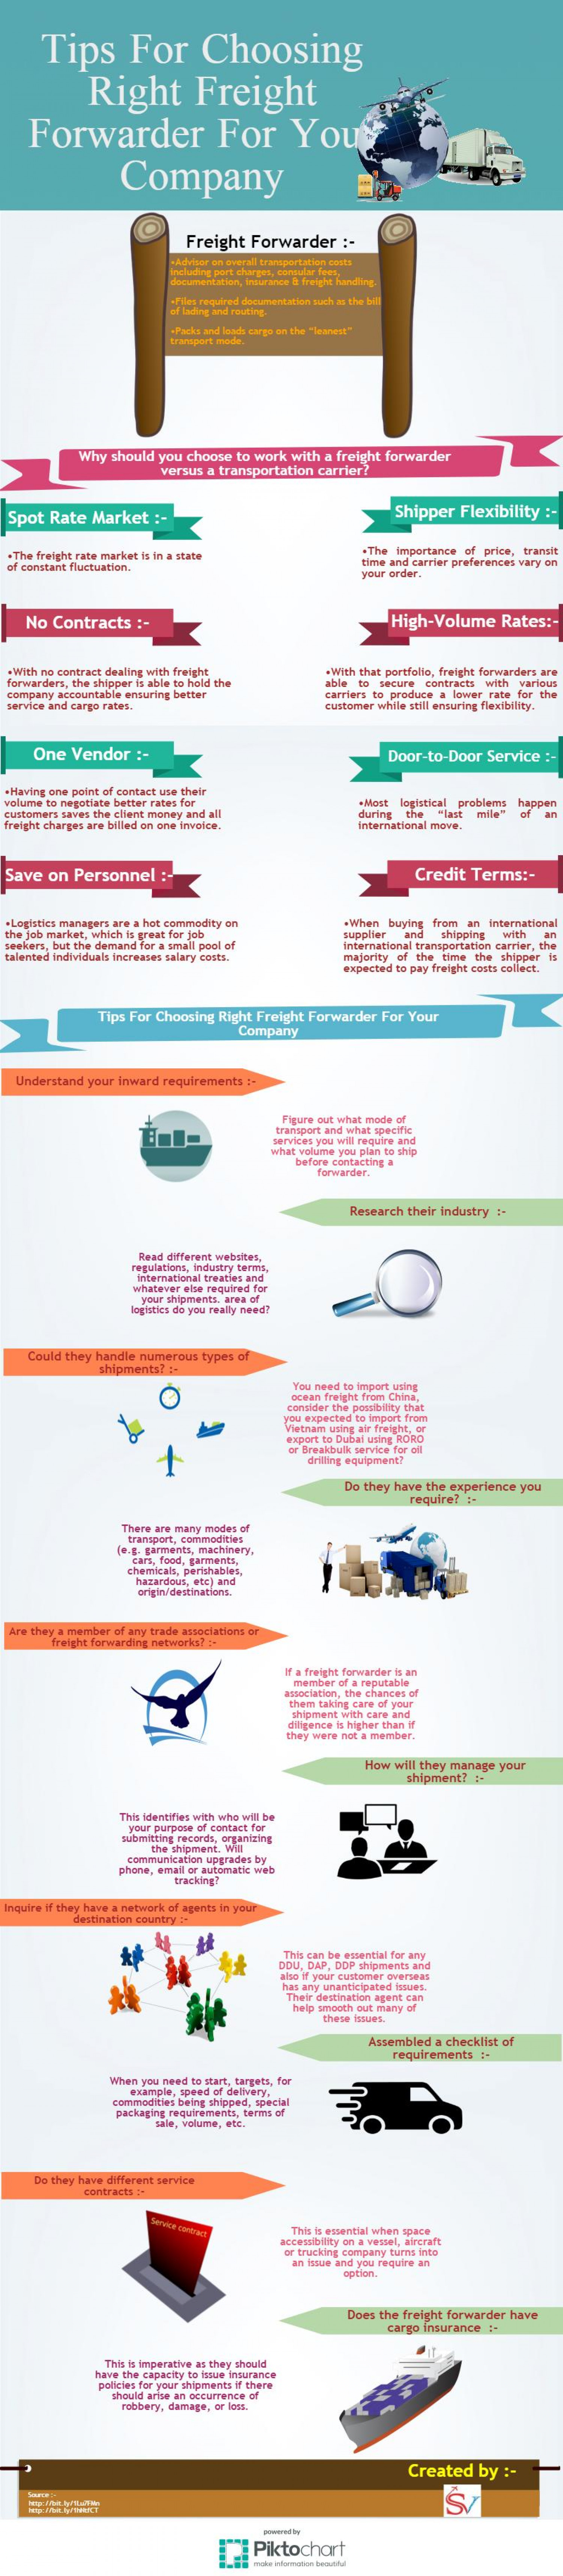 Tips For Choosing Right Freight Forwarder For Your Company Infographic